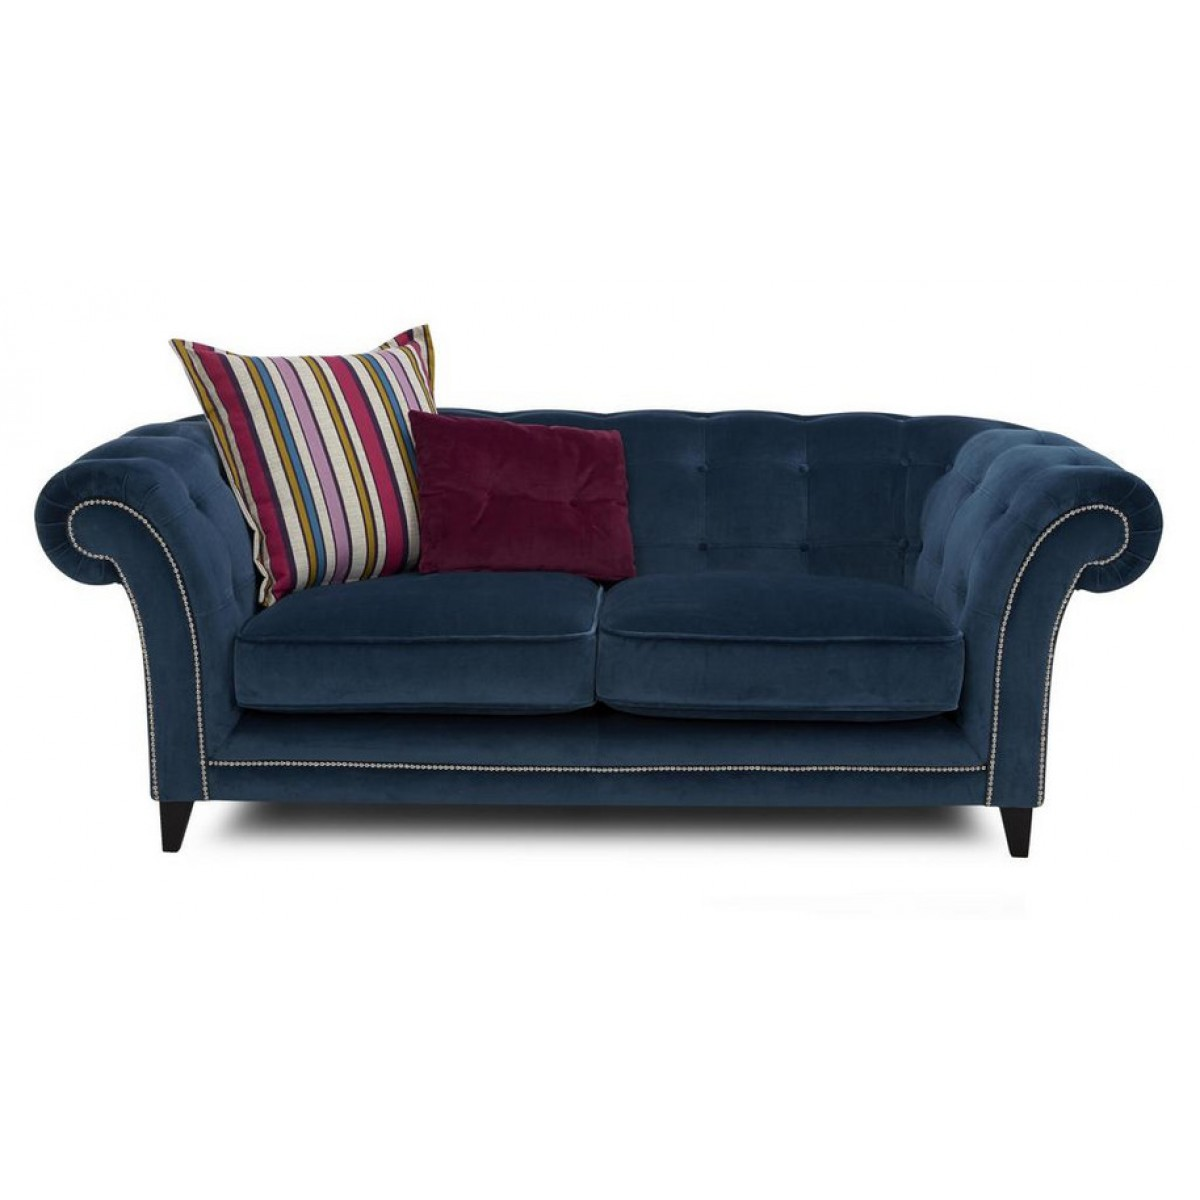 Ensemble de canap s personnalisable chesterfield clout s for Canape angle tissu 7 places